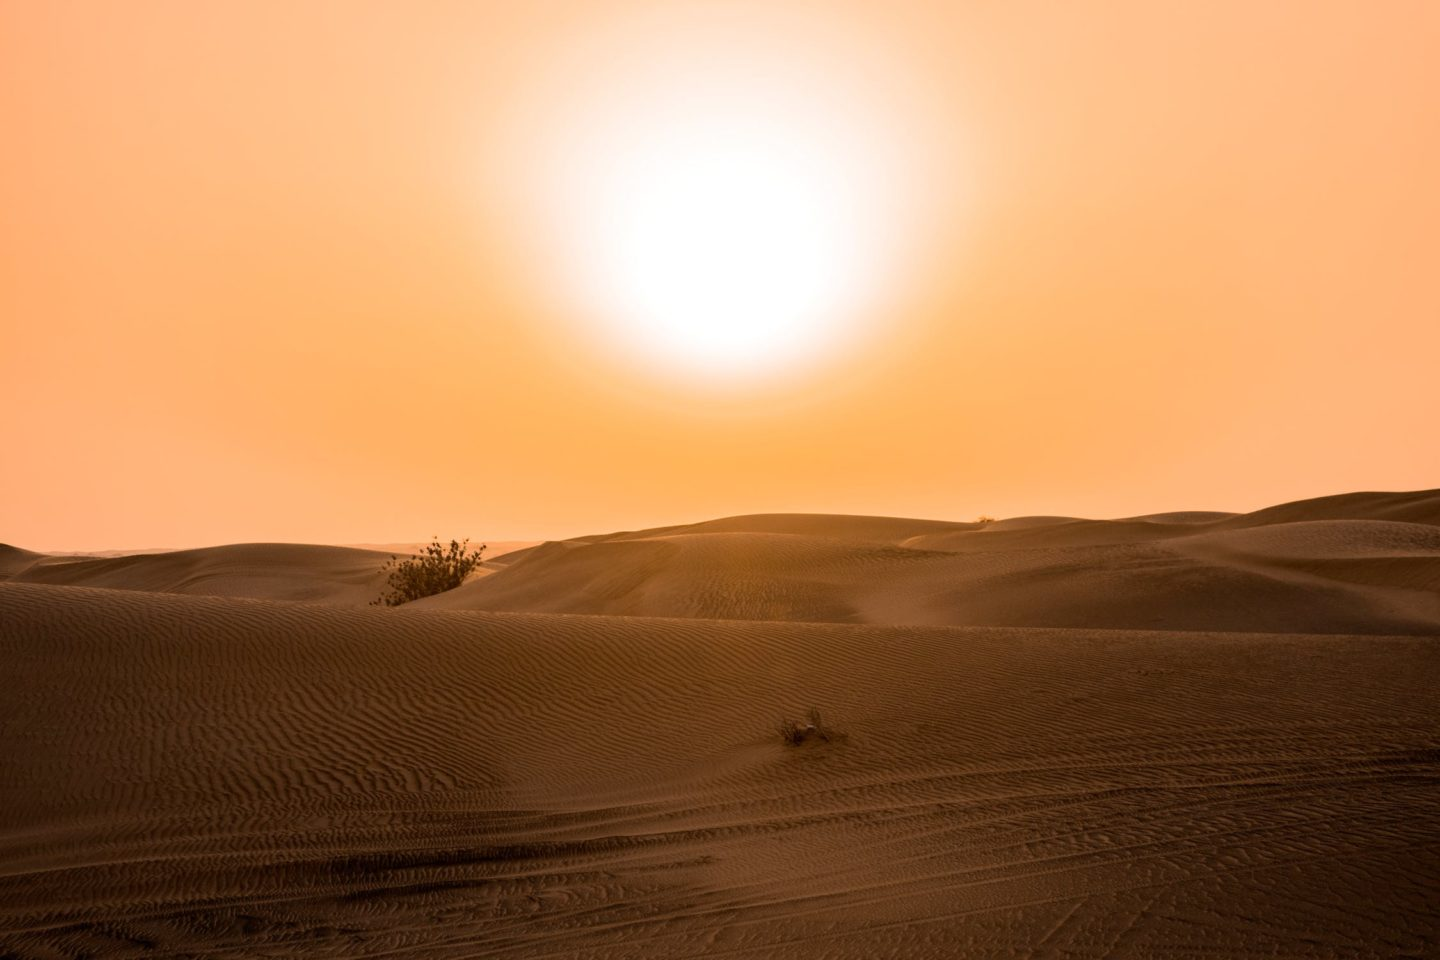 Dubai excursions in the desert, best desert safari dubai